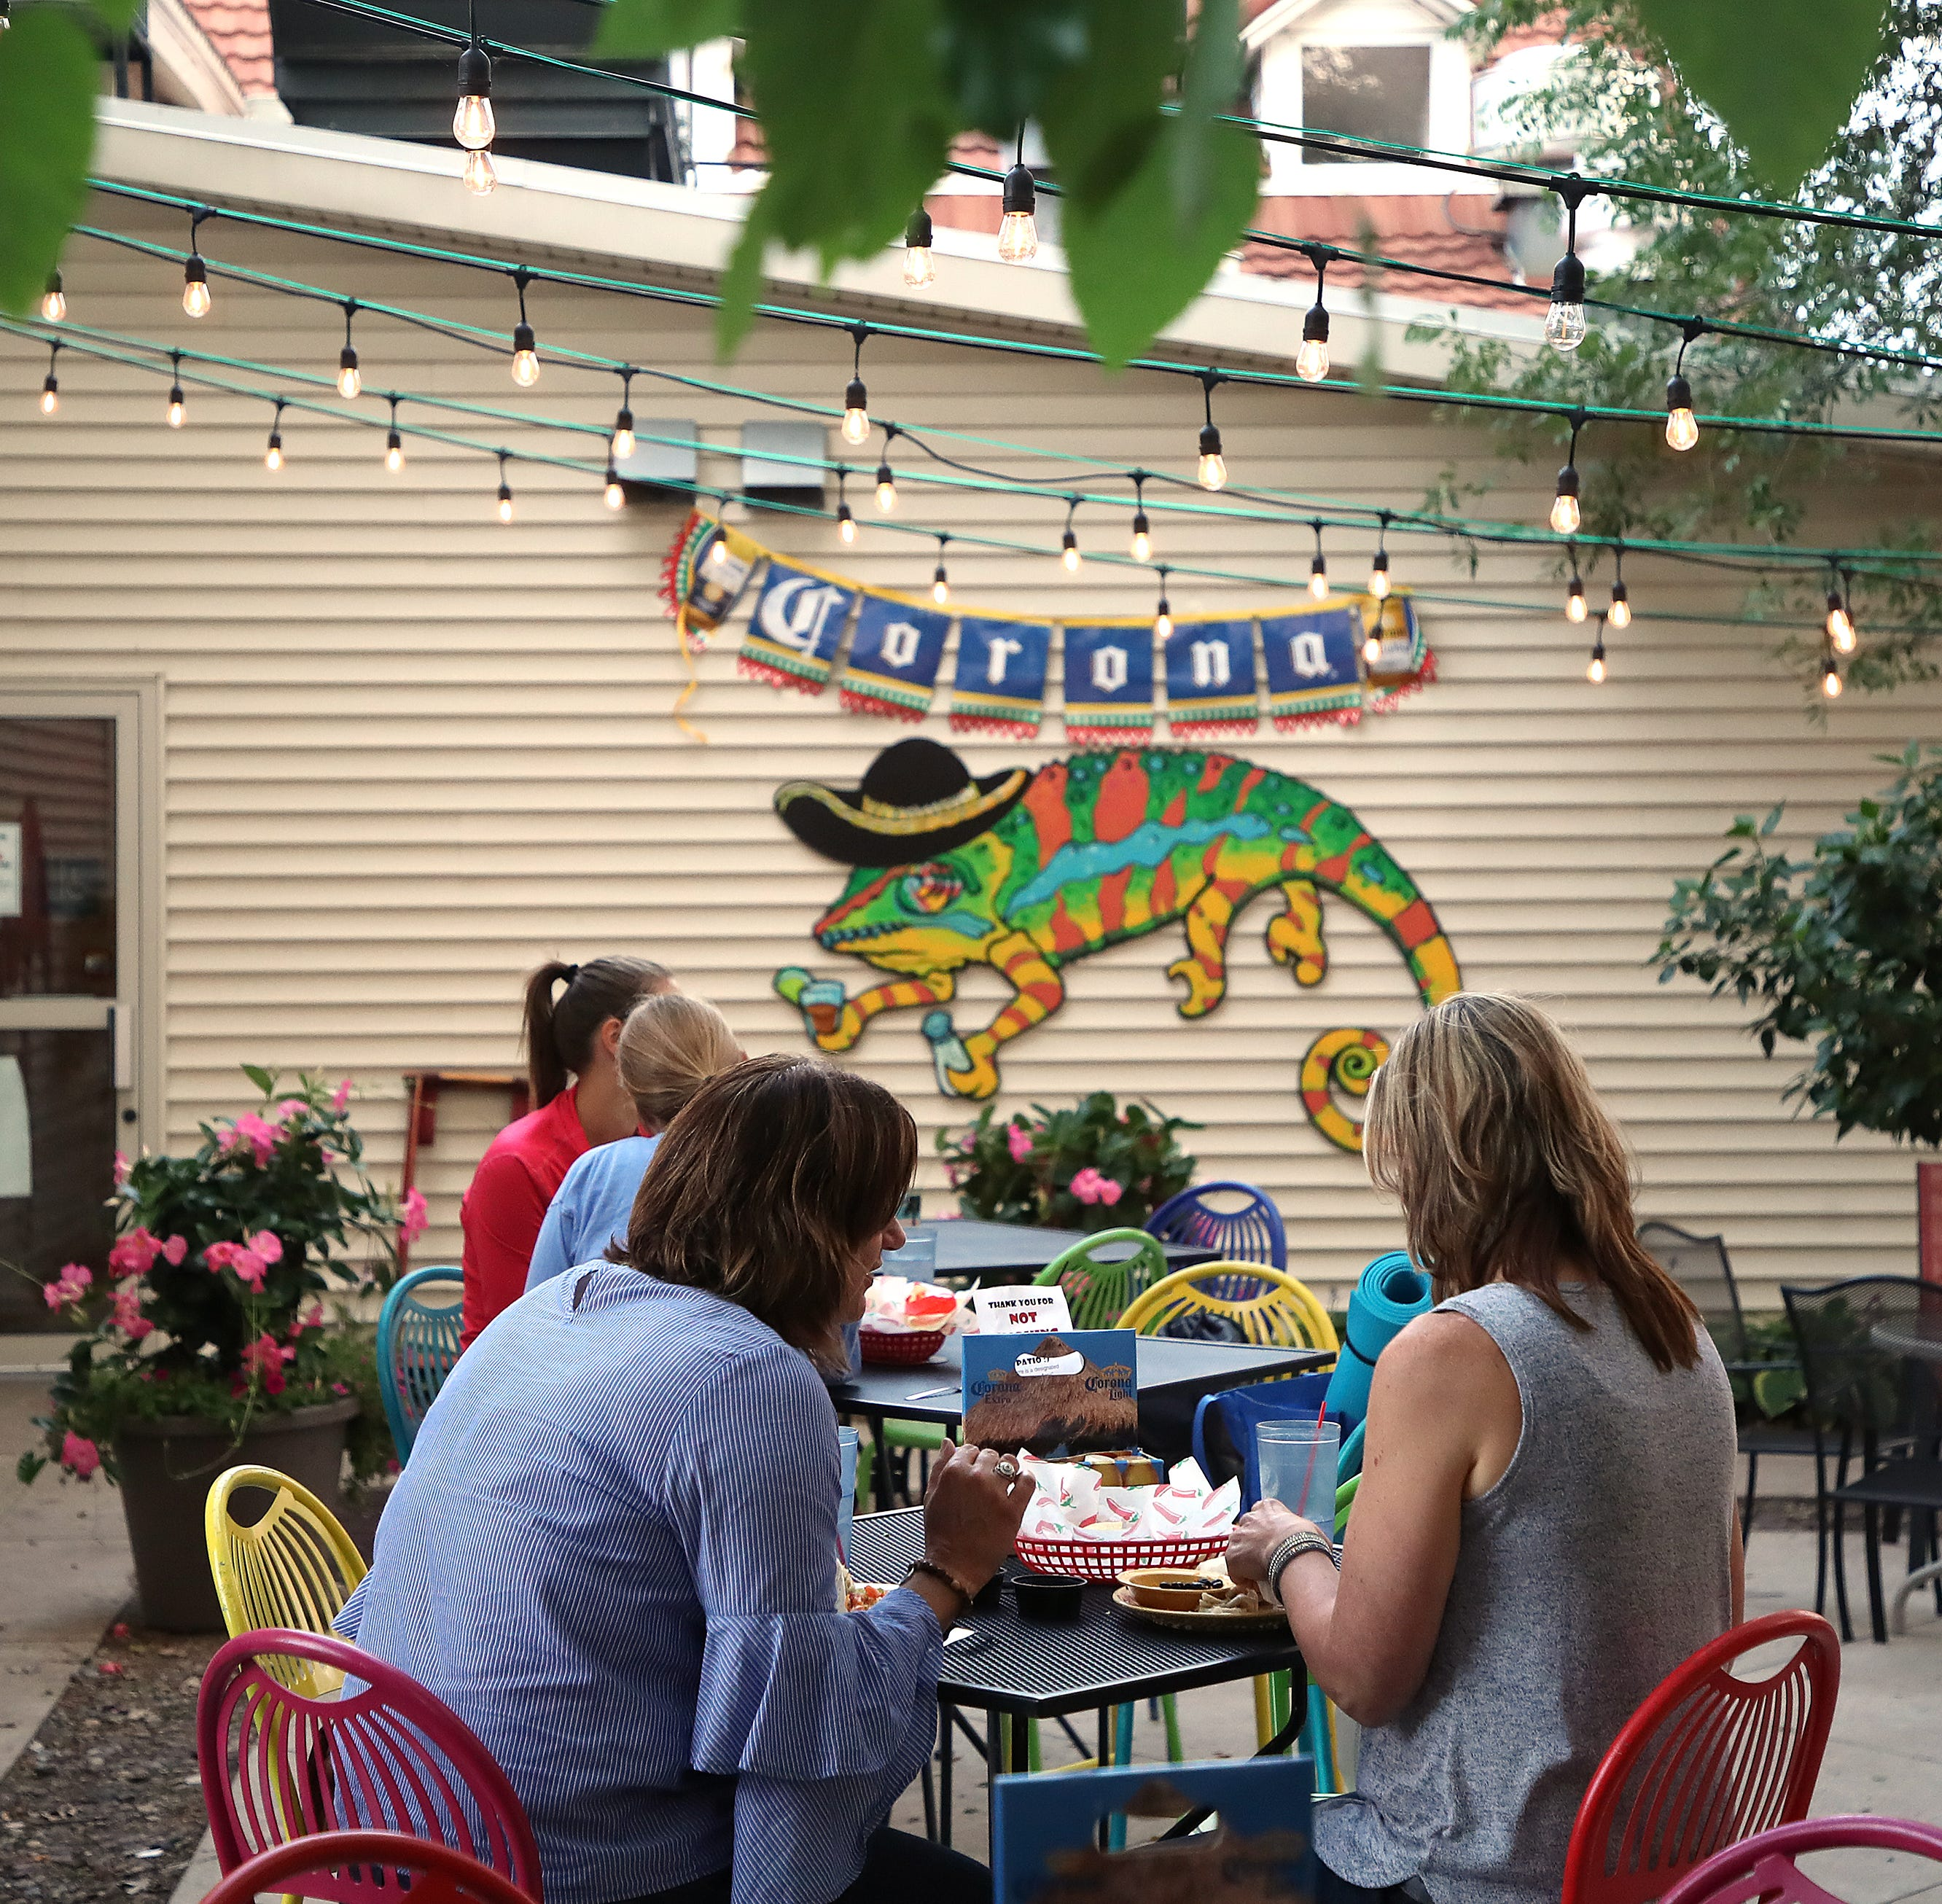 At Caliente's patio in De Pere, the vibe is colorful and the margaritas flavorful